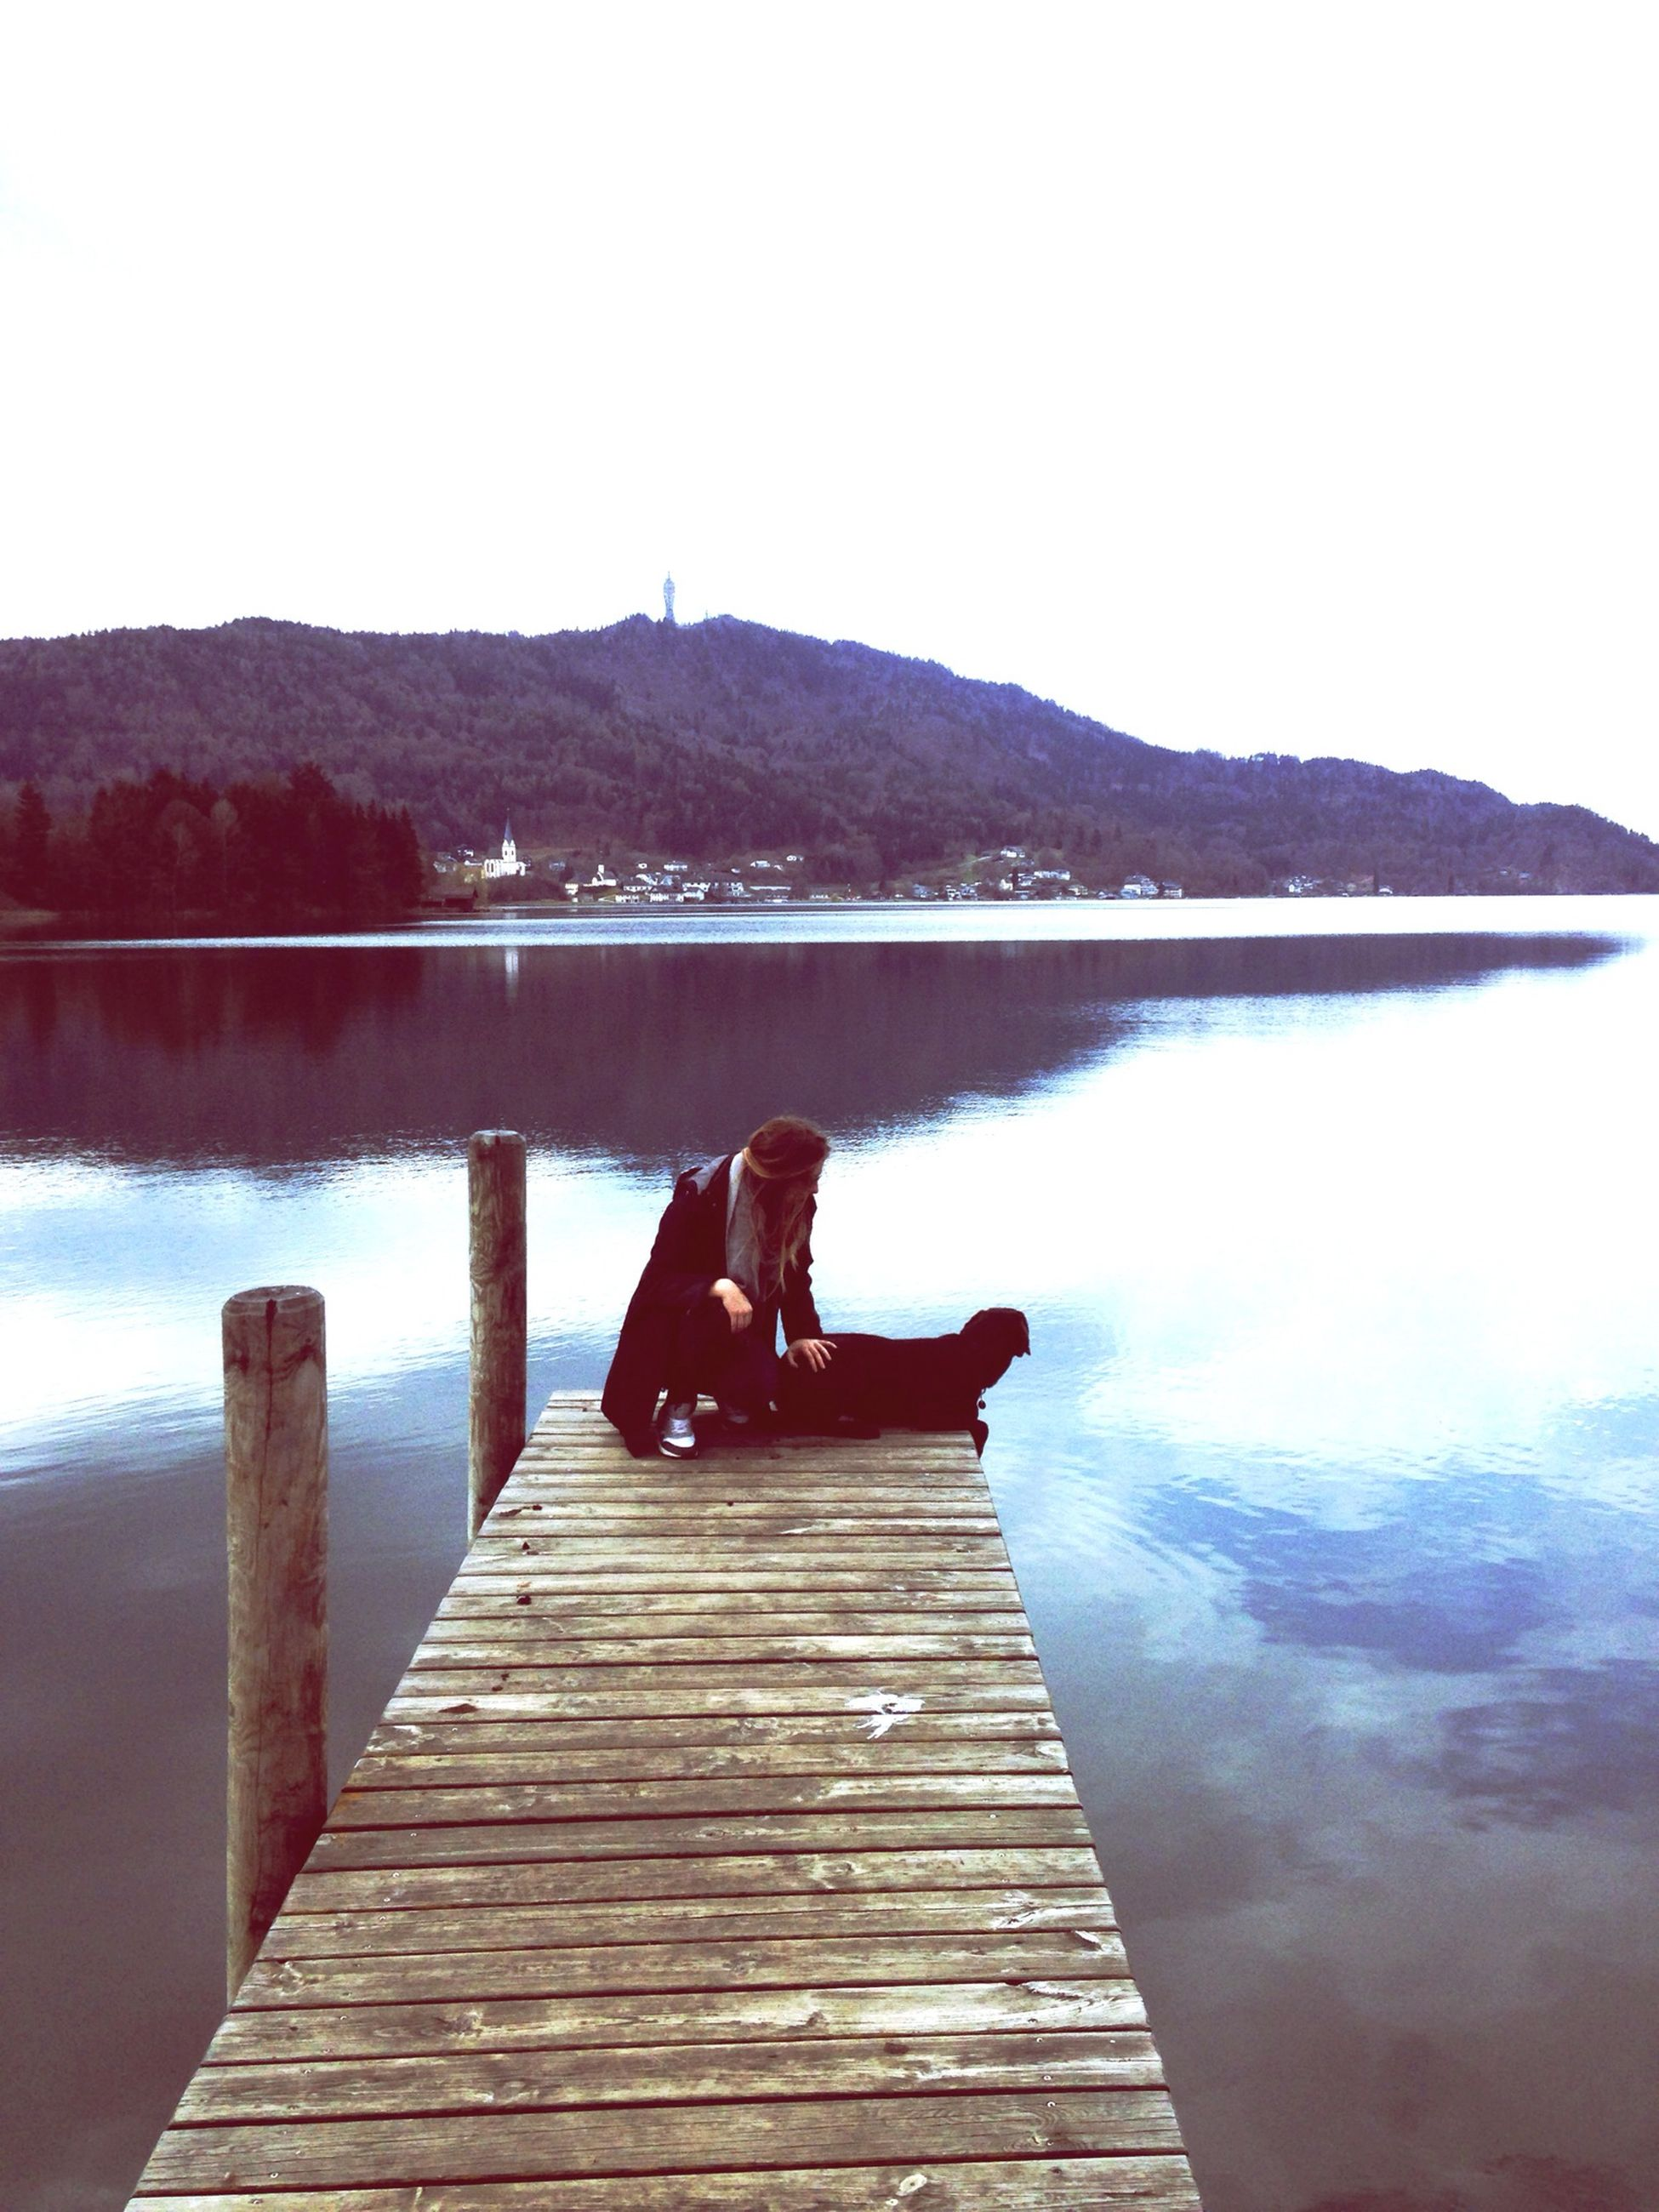 water, lake, lifestyles, leisure activity, sitting, reflection, mountain, men, pier, clear sky, scenics, tranquility, tranquil scene, relaxation, nature, beauty in nature, sky, standing